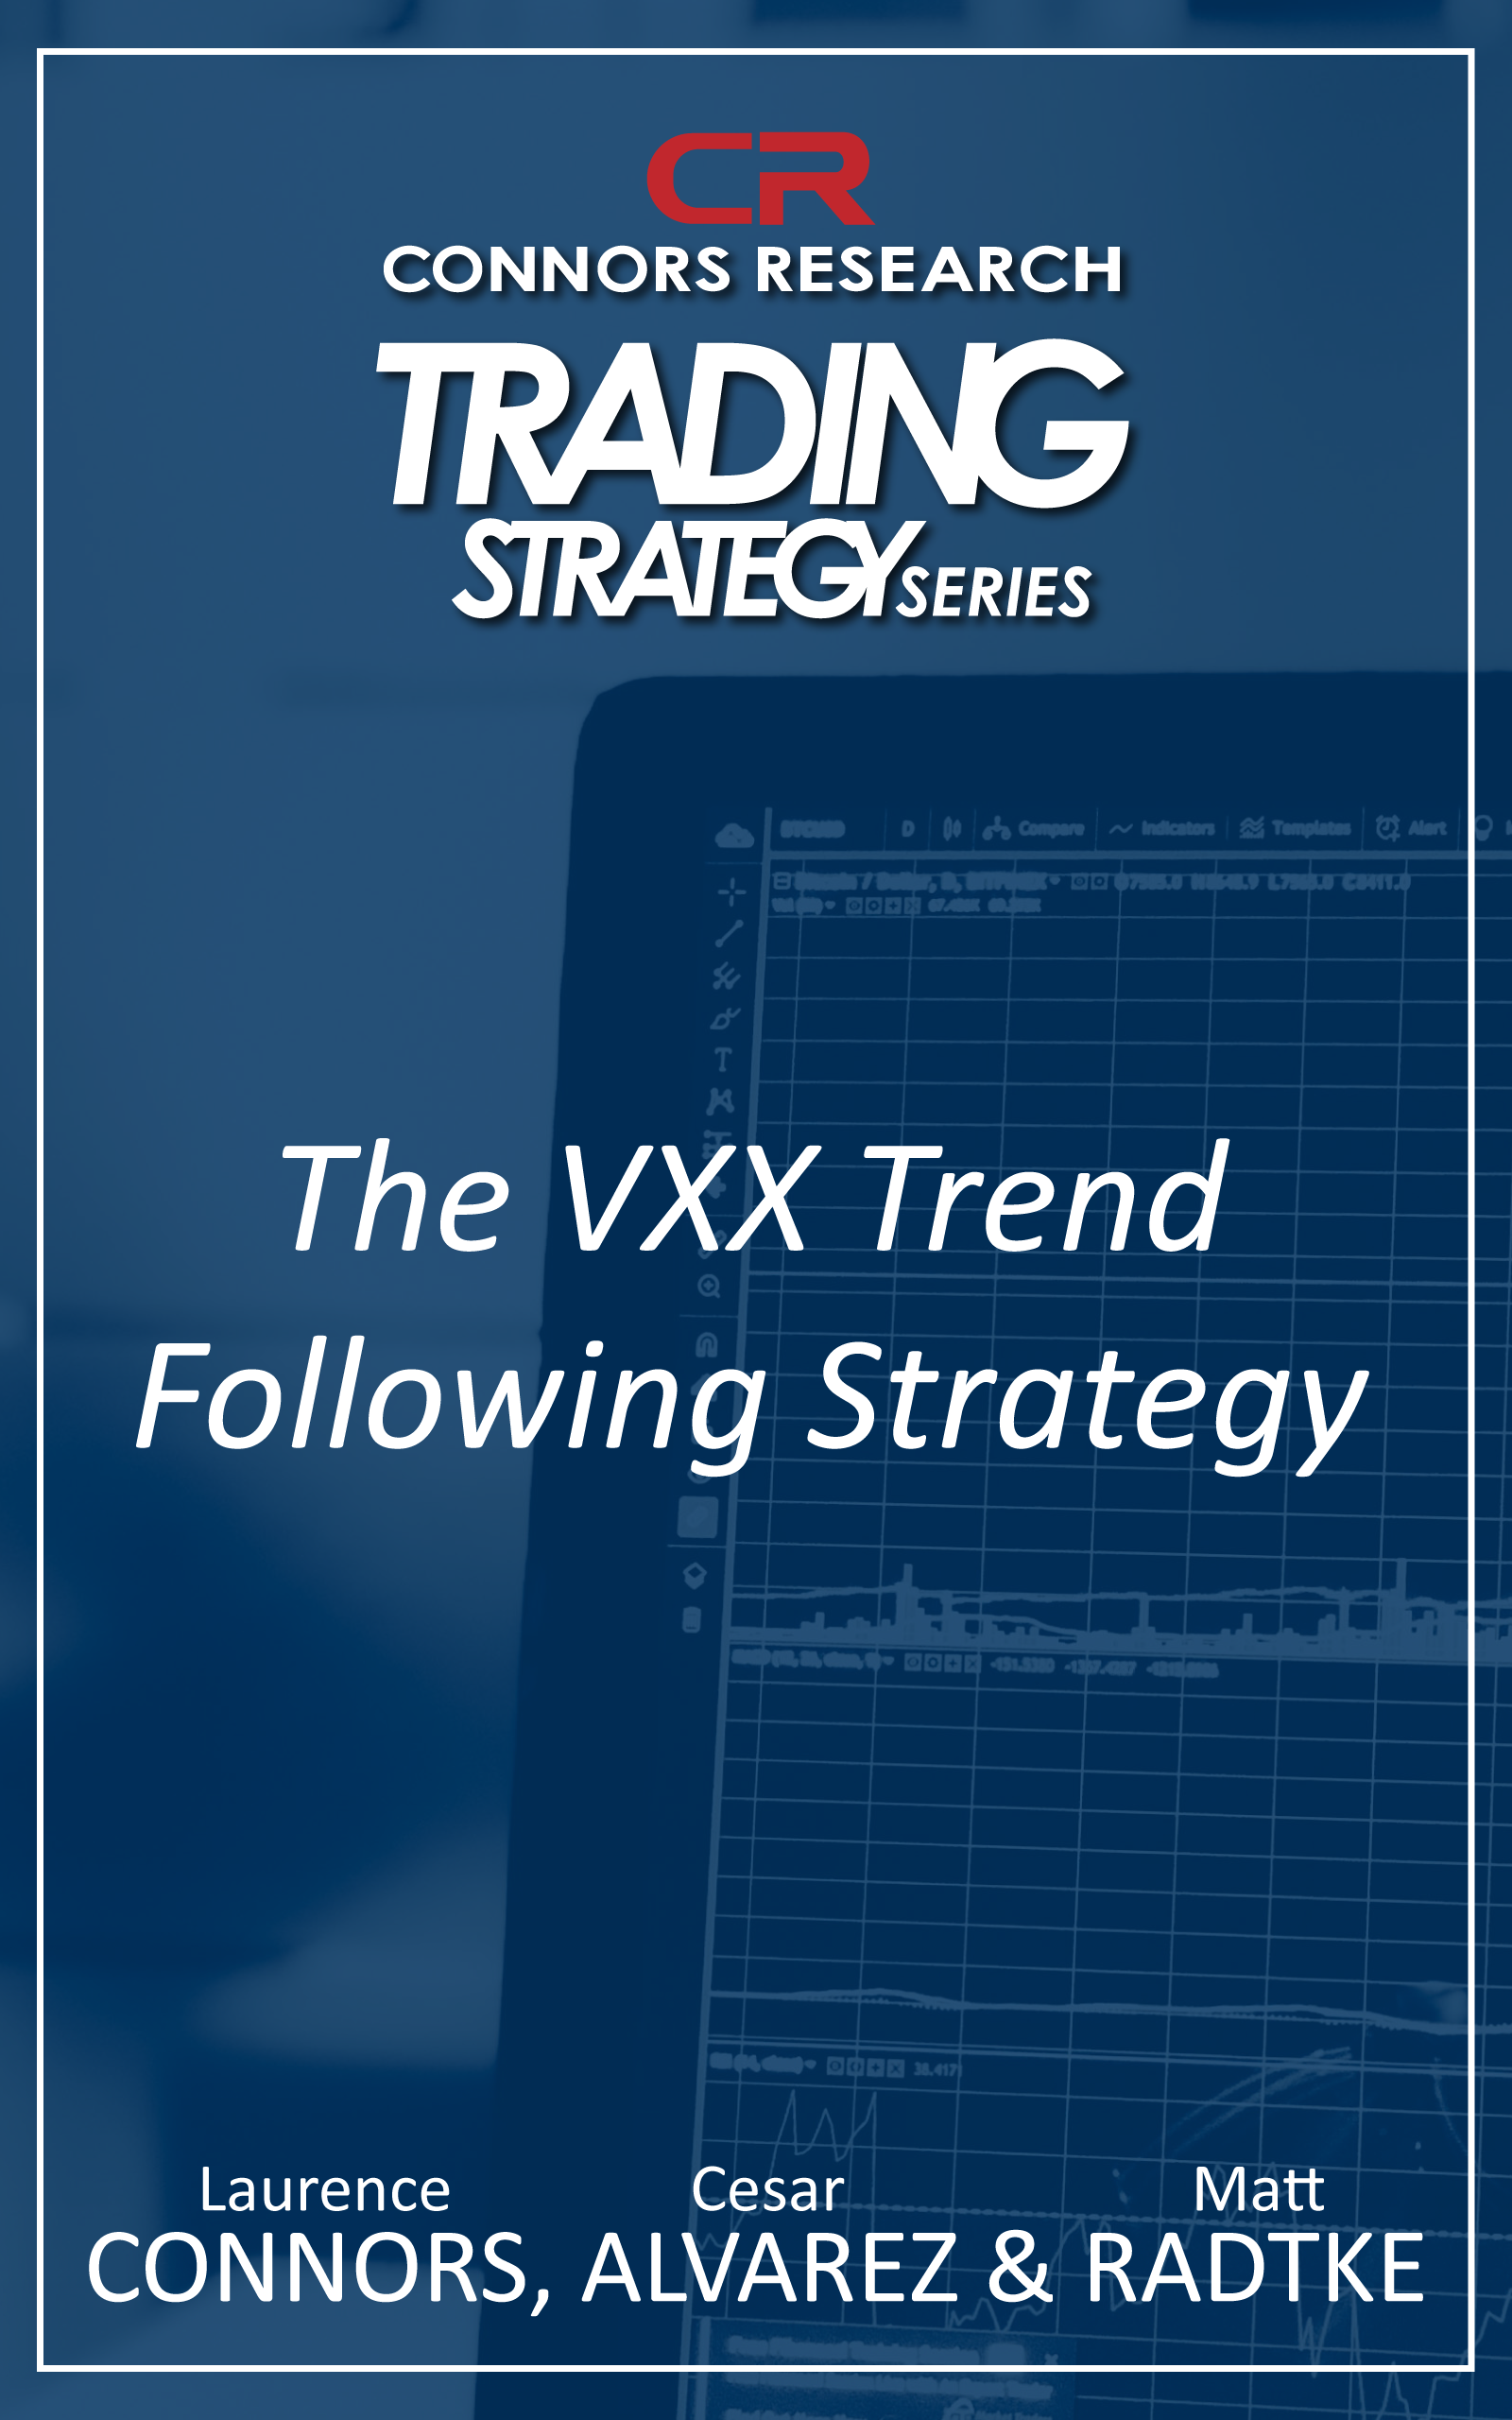 Connors Research Trading Strategy Series: The VXX Trend Following Strategy BOO-VTF-D